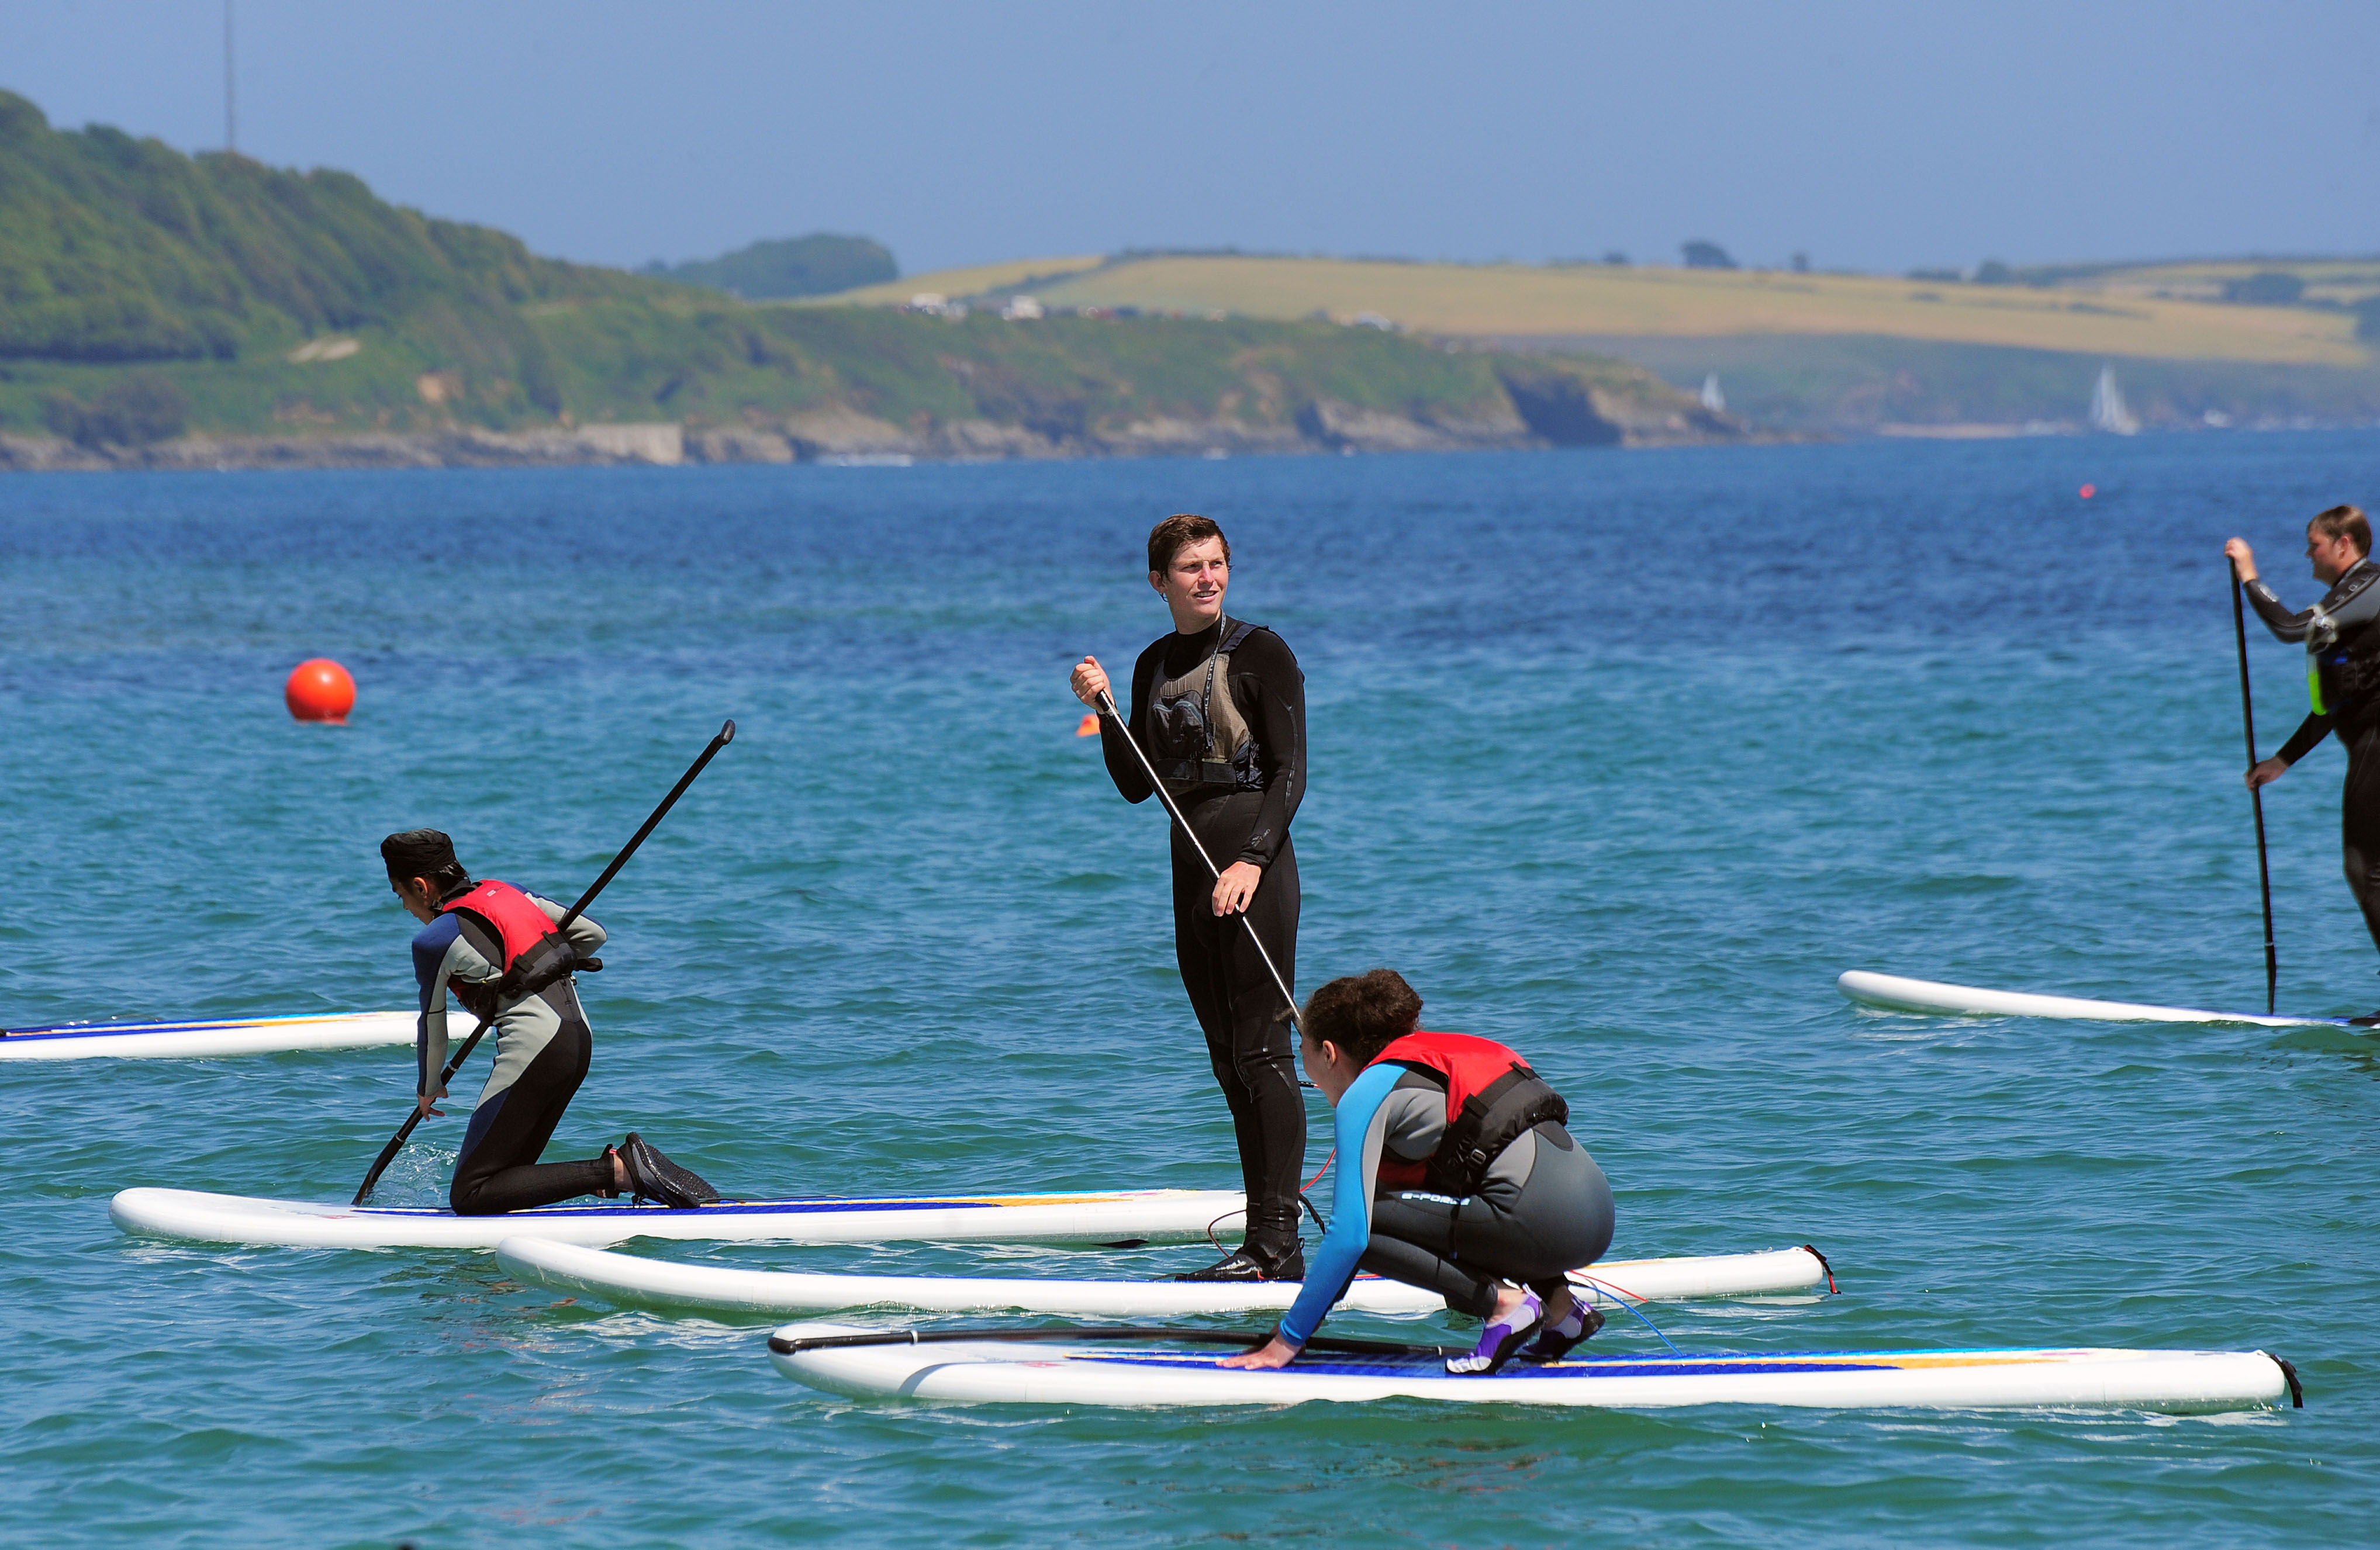 SUP Tuition - Stand up Paddleboarding - Swanpool Beach, Falmouth